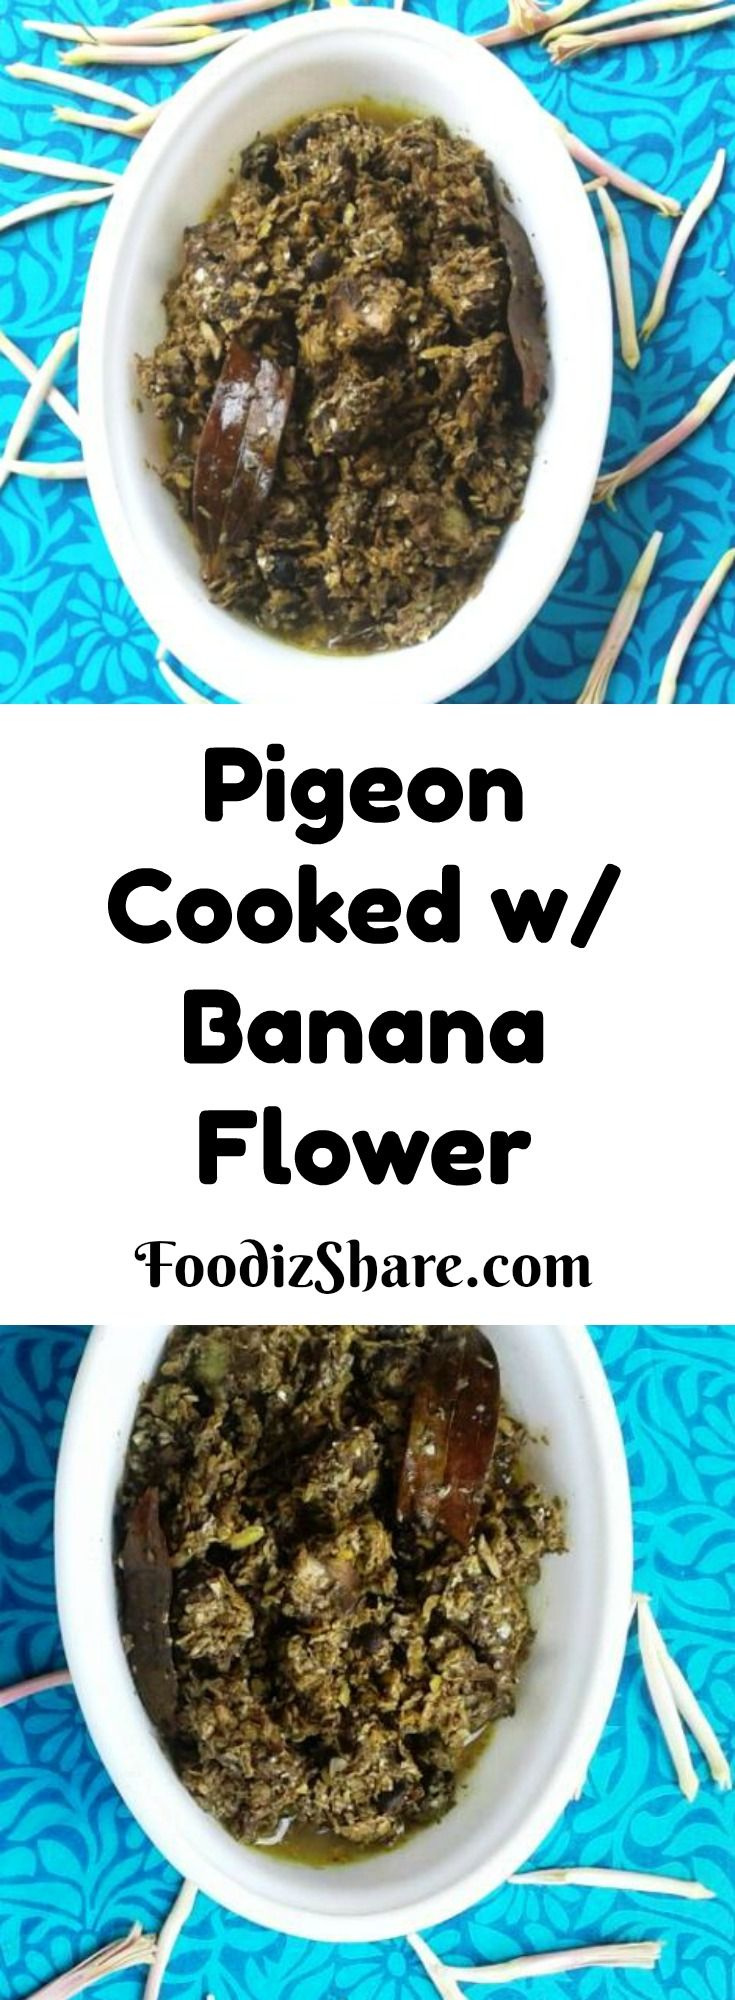 This is a #traditional and #healthy #recipe for pigeon #meat cooked with banana flower. It is a highly nutritious and iron rich dish recommended for anemic people. #healthyrecipes #indian #comfortfood #glutenfree #food #poultry